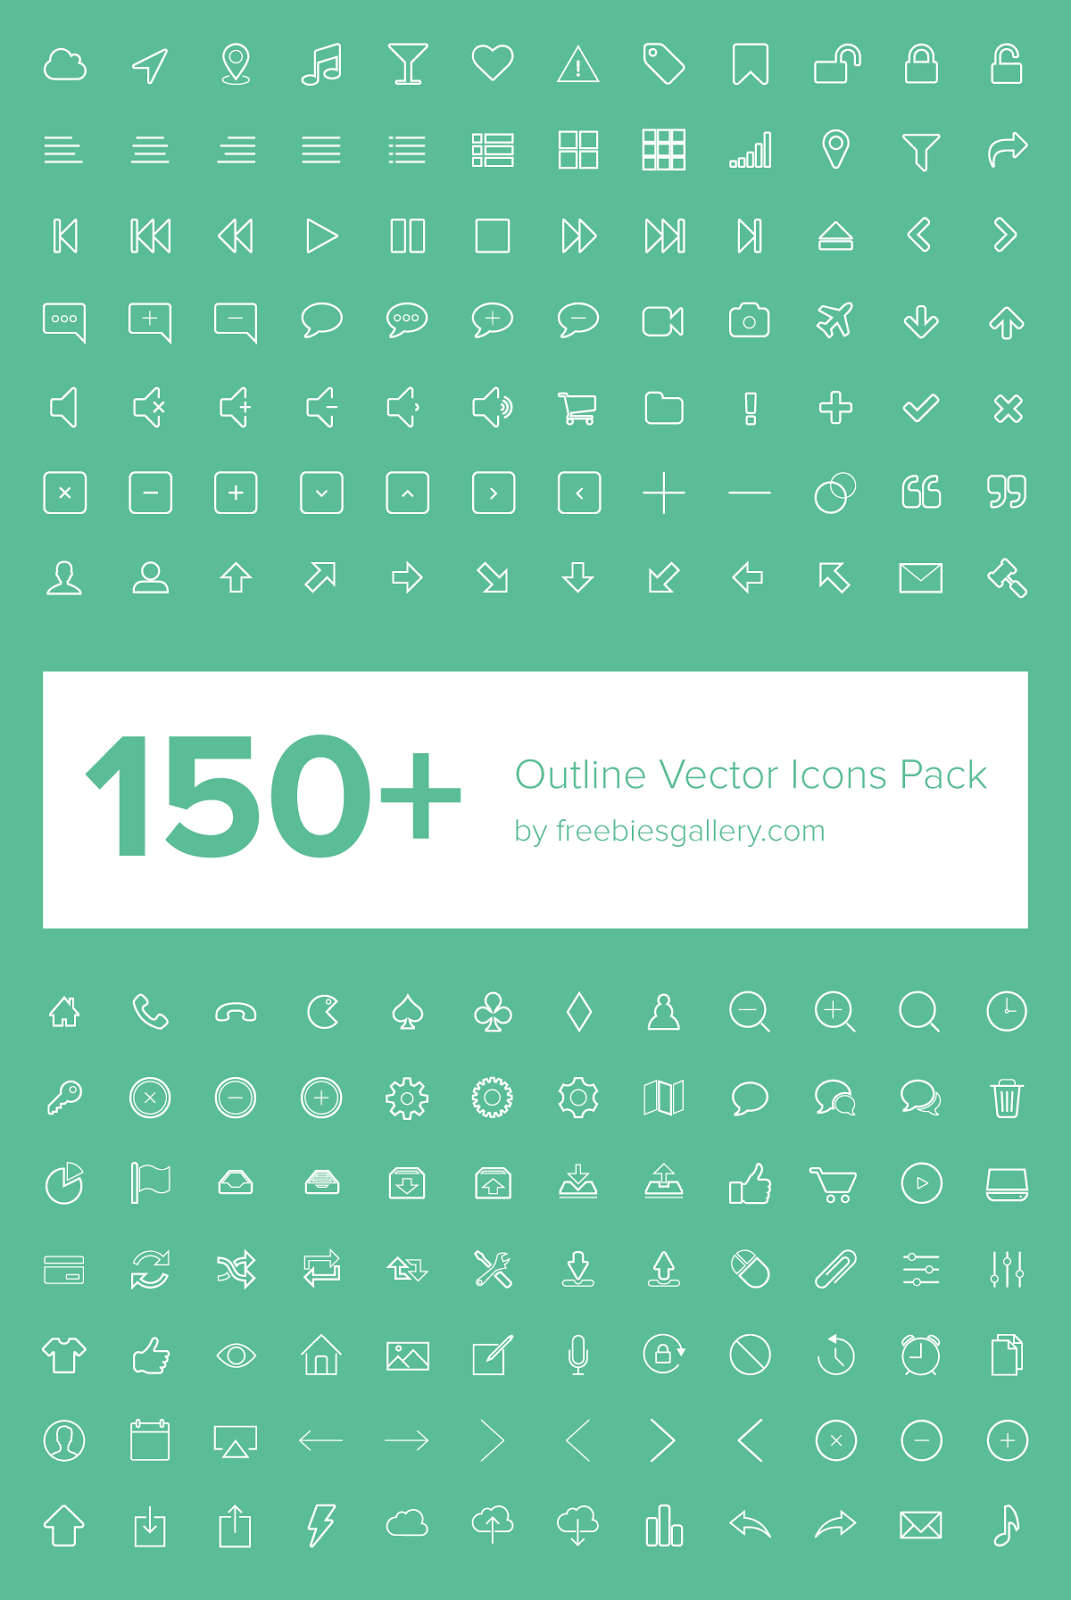 20 Free Icon Sets for Designers